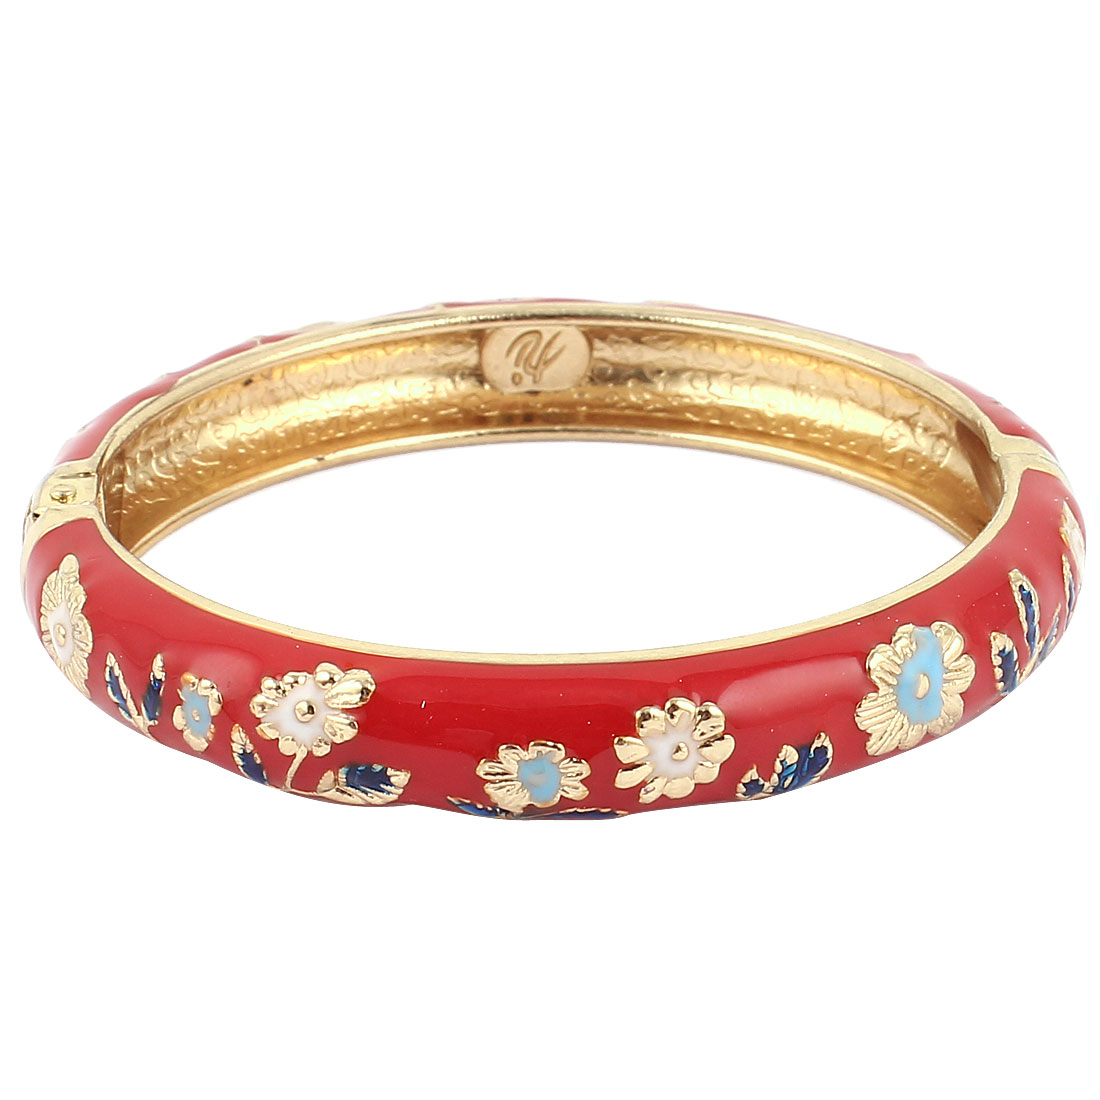 Women Girls 2.7-inch Dia Red Hinged Enamel Bracelet Bangle